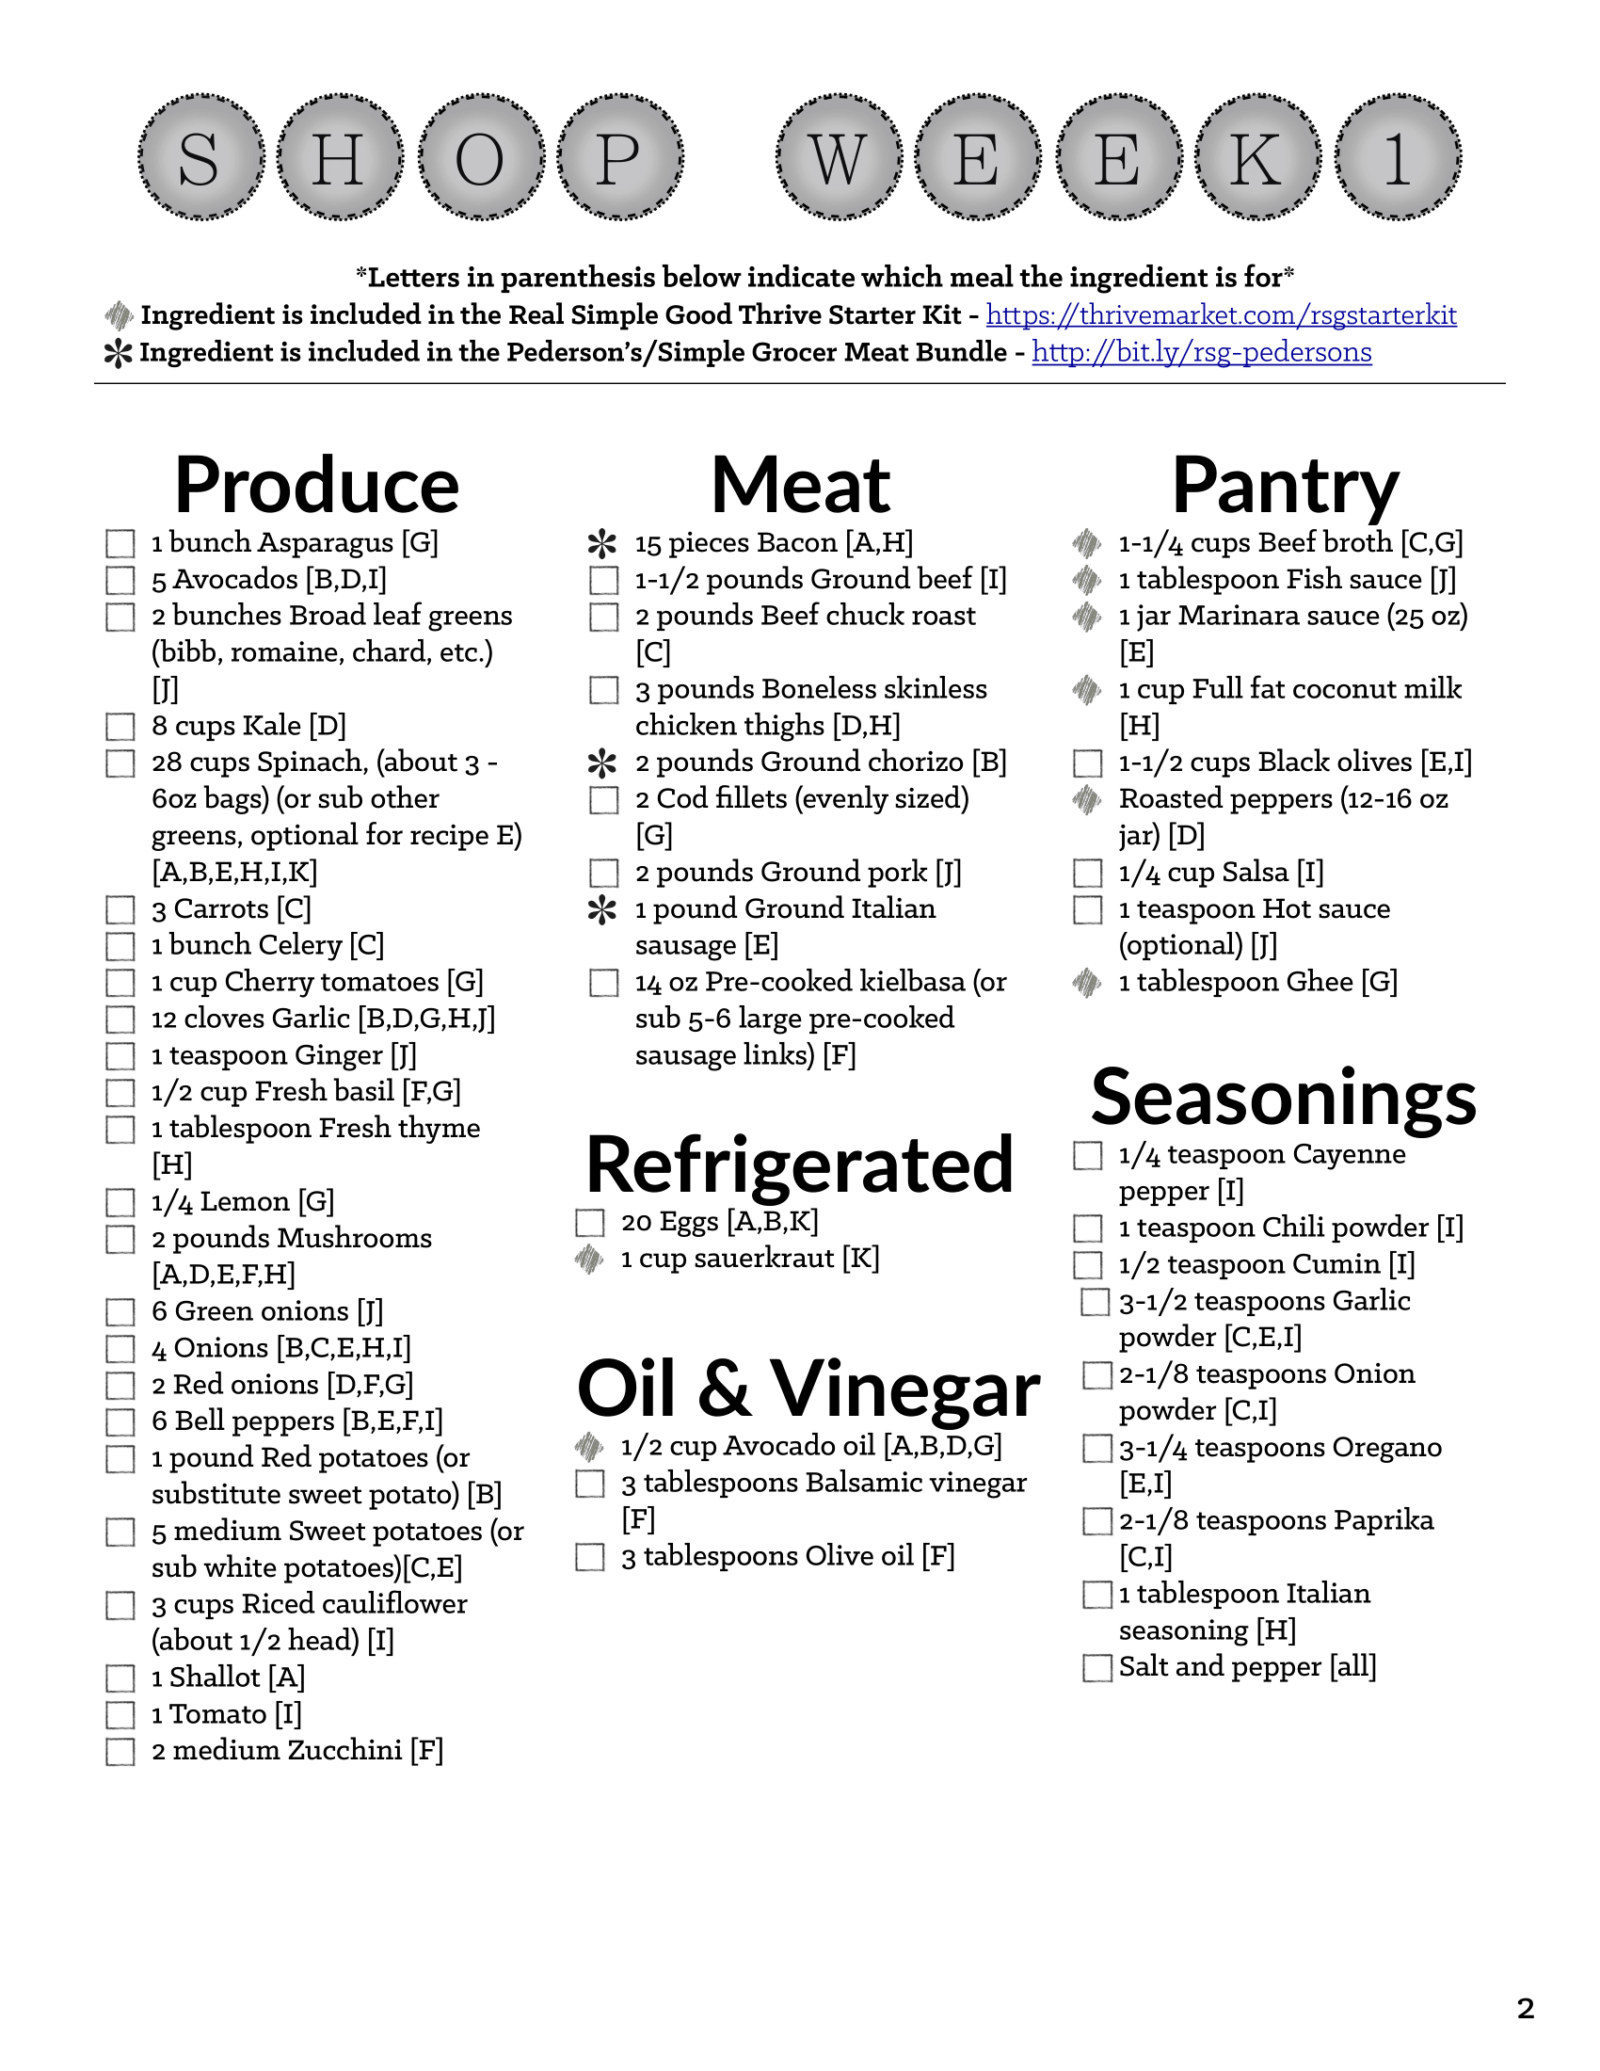 Image of printable Whole 30 Meal Plan shopping list